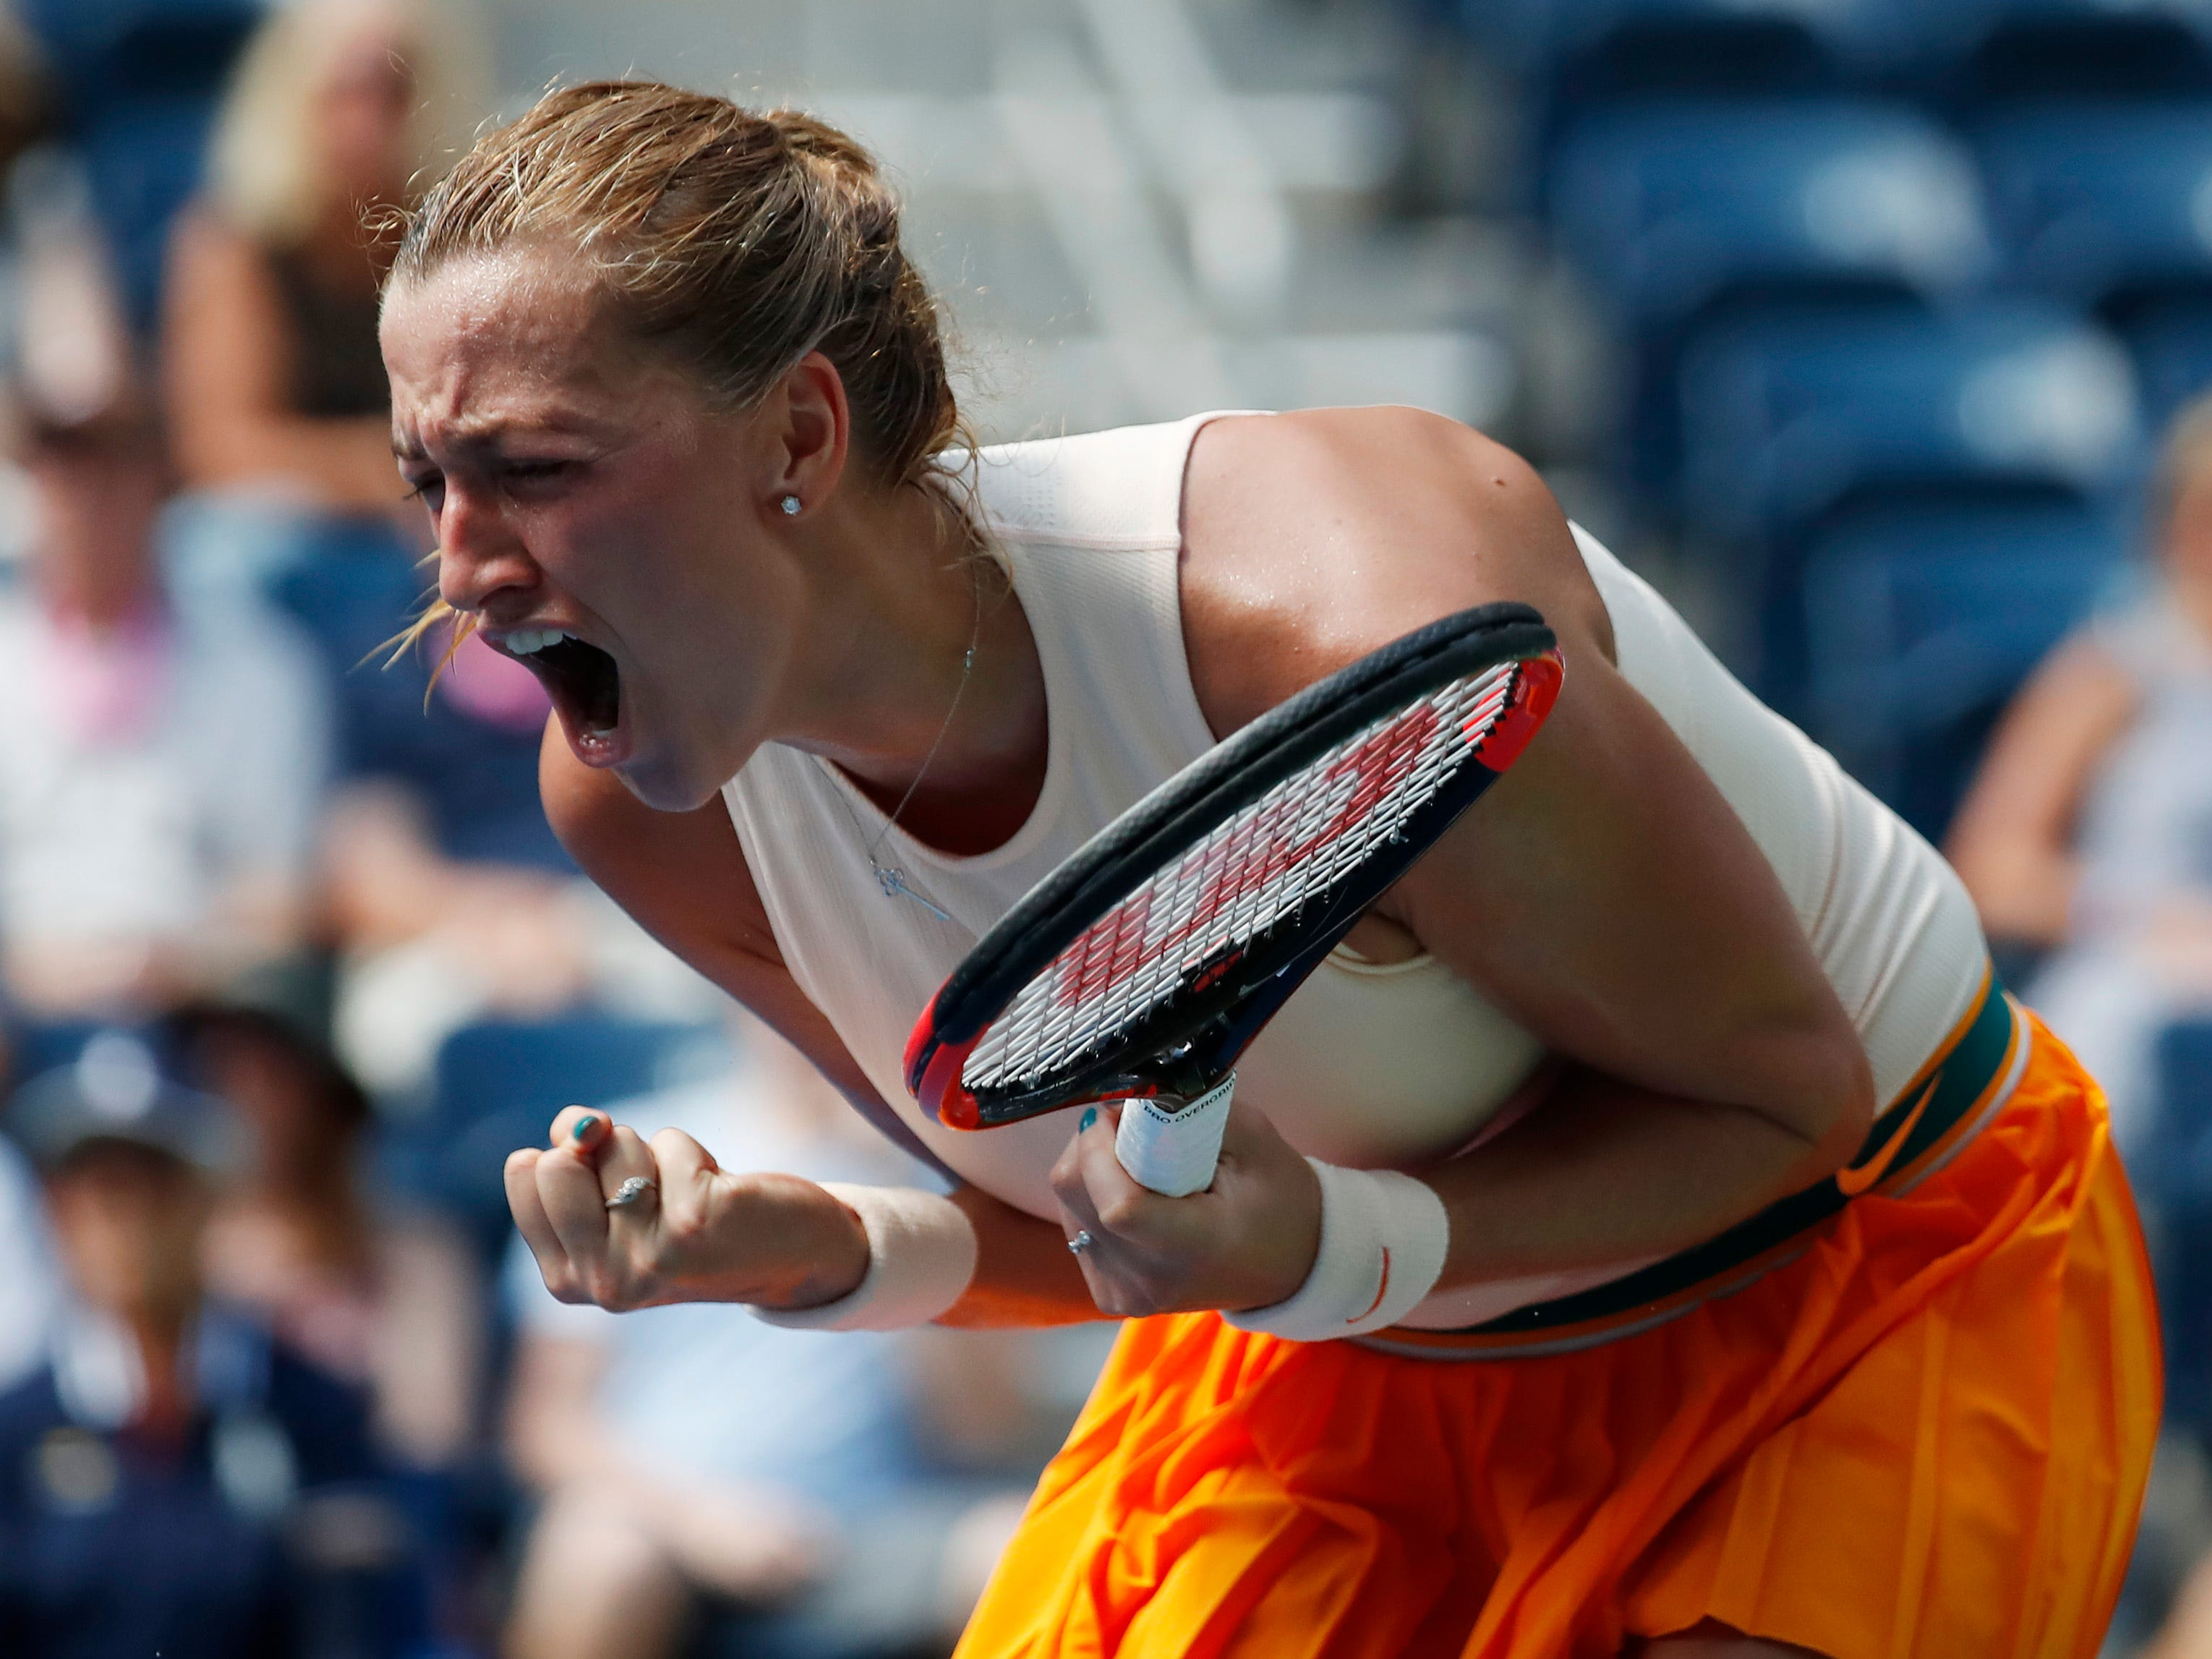 Petra Kvitova of Czech Republic celebrates after winning the first set against Yafan Wang of China.